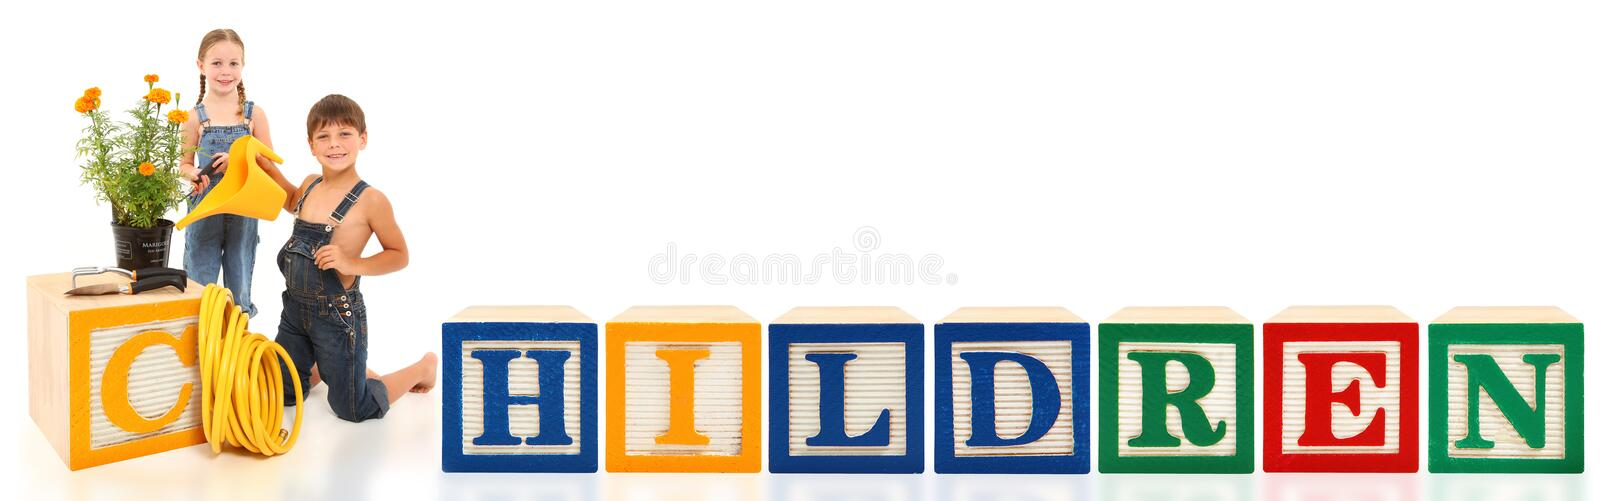 Alphabet Blocks Children royalty free stock image